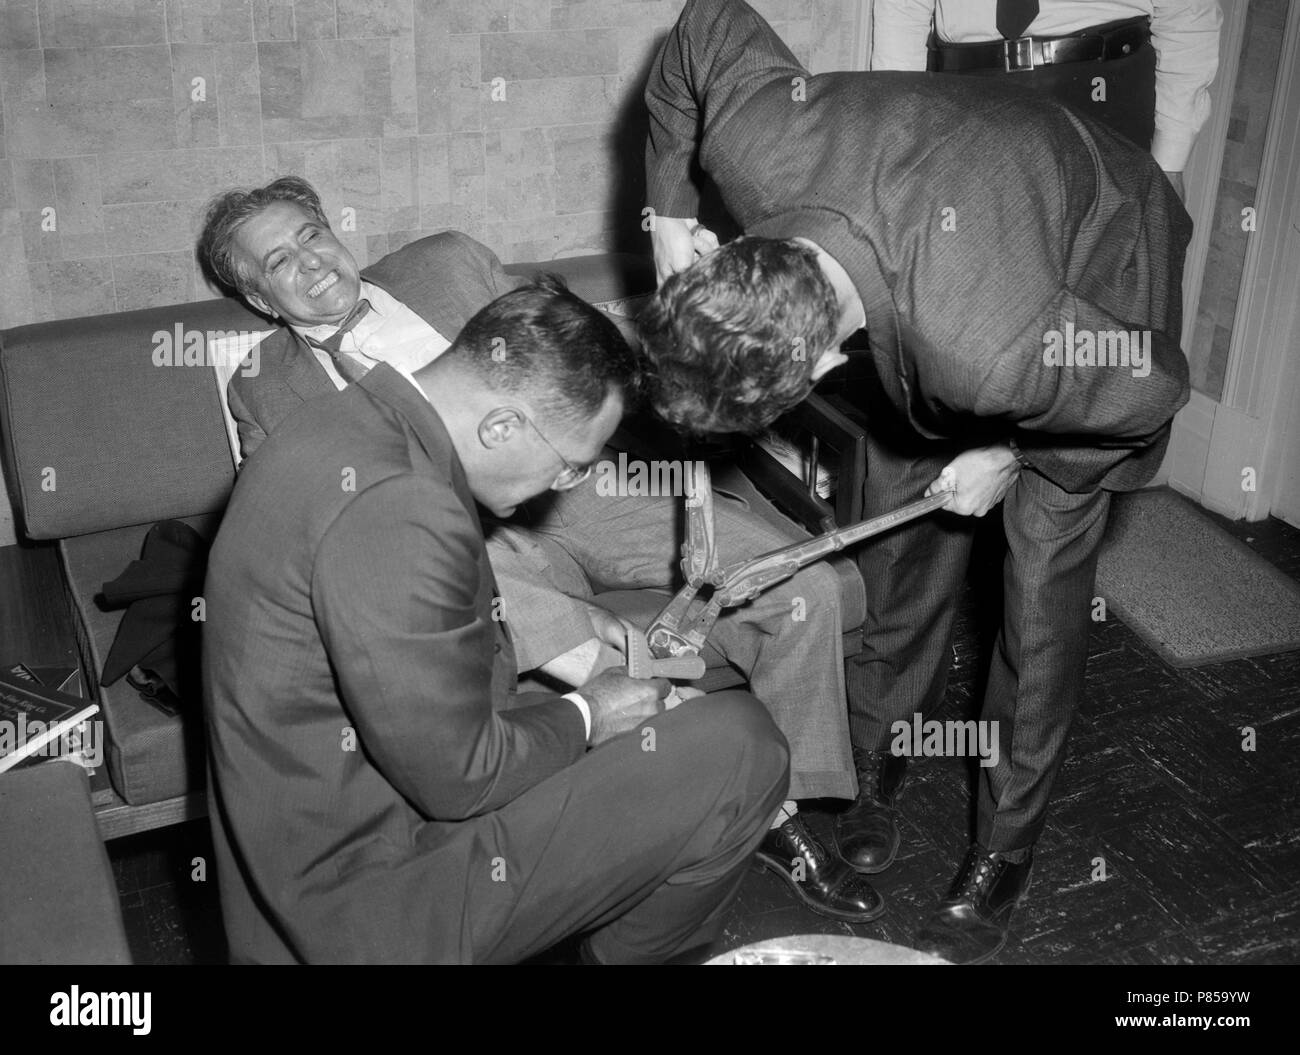 A jeweler grimaces as police cut him loose after a bad guy had handcuffed him to a couch during a robbery in Chicago, ca. 1962. - Stock Image